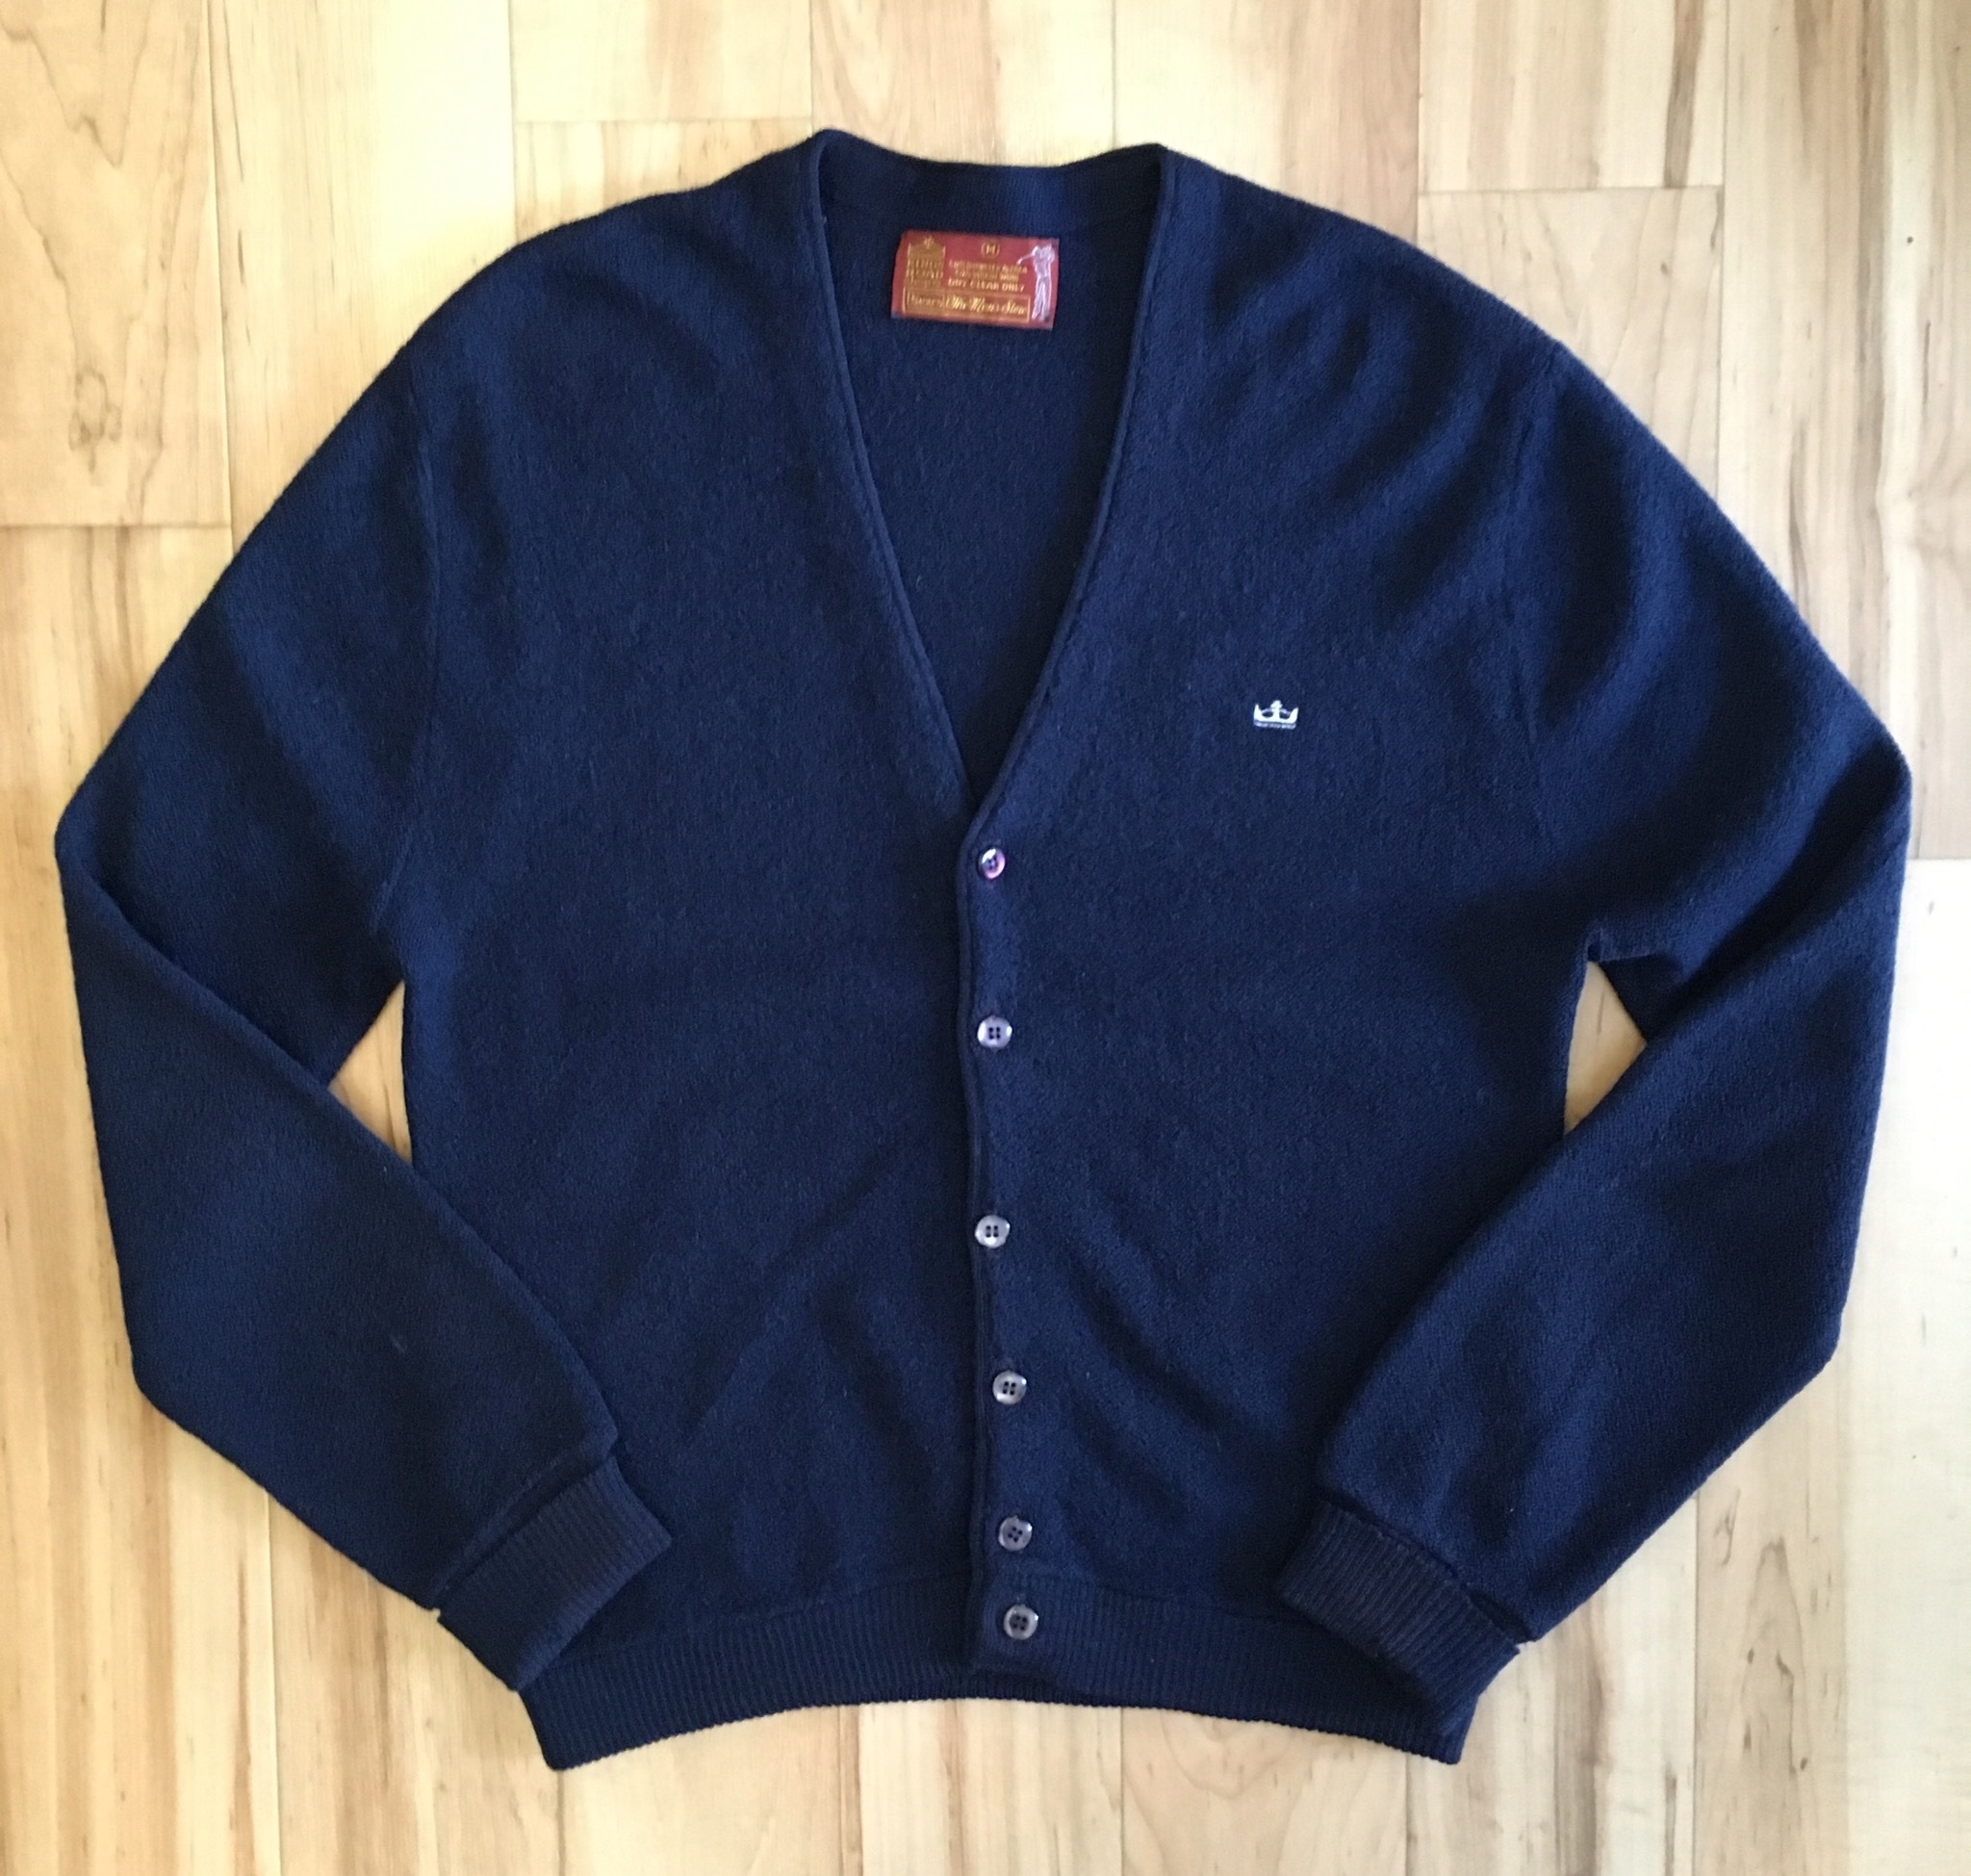 Sears KINGS ROAD shop Knit Cardigan